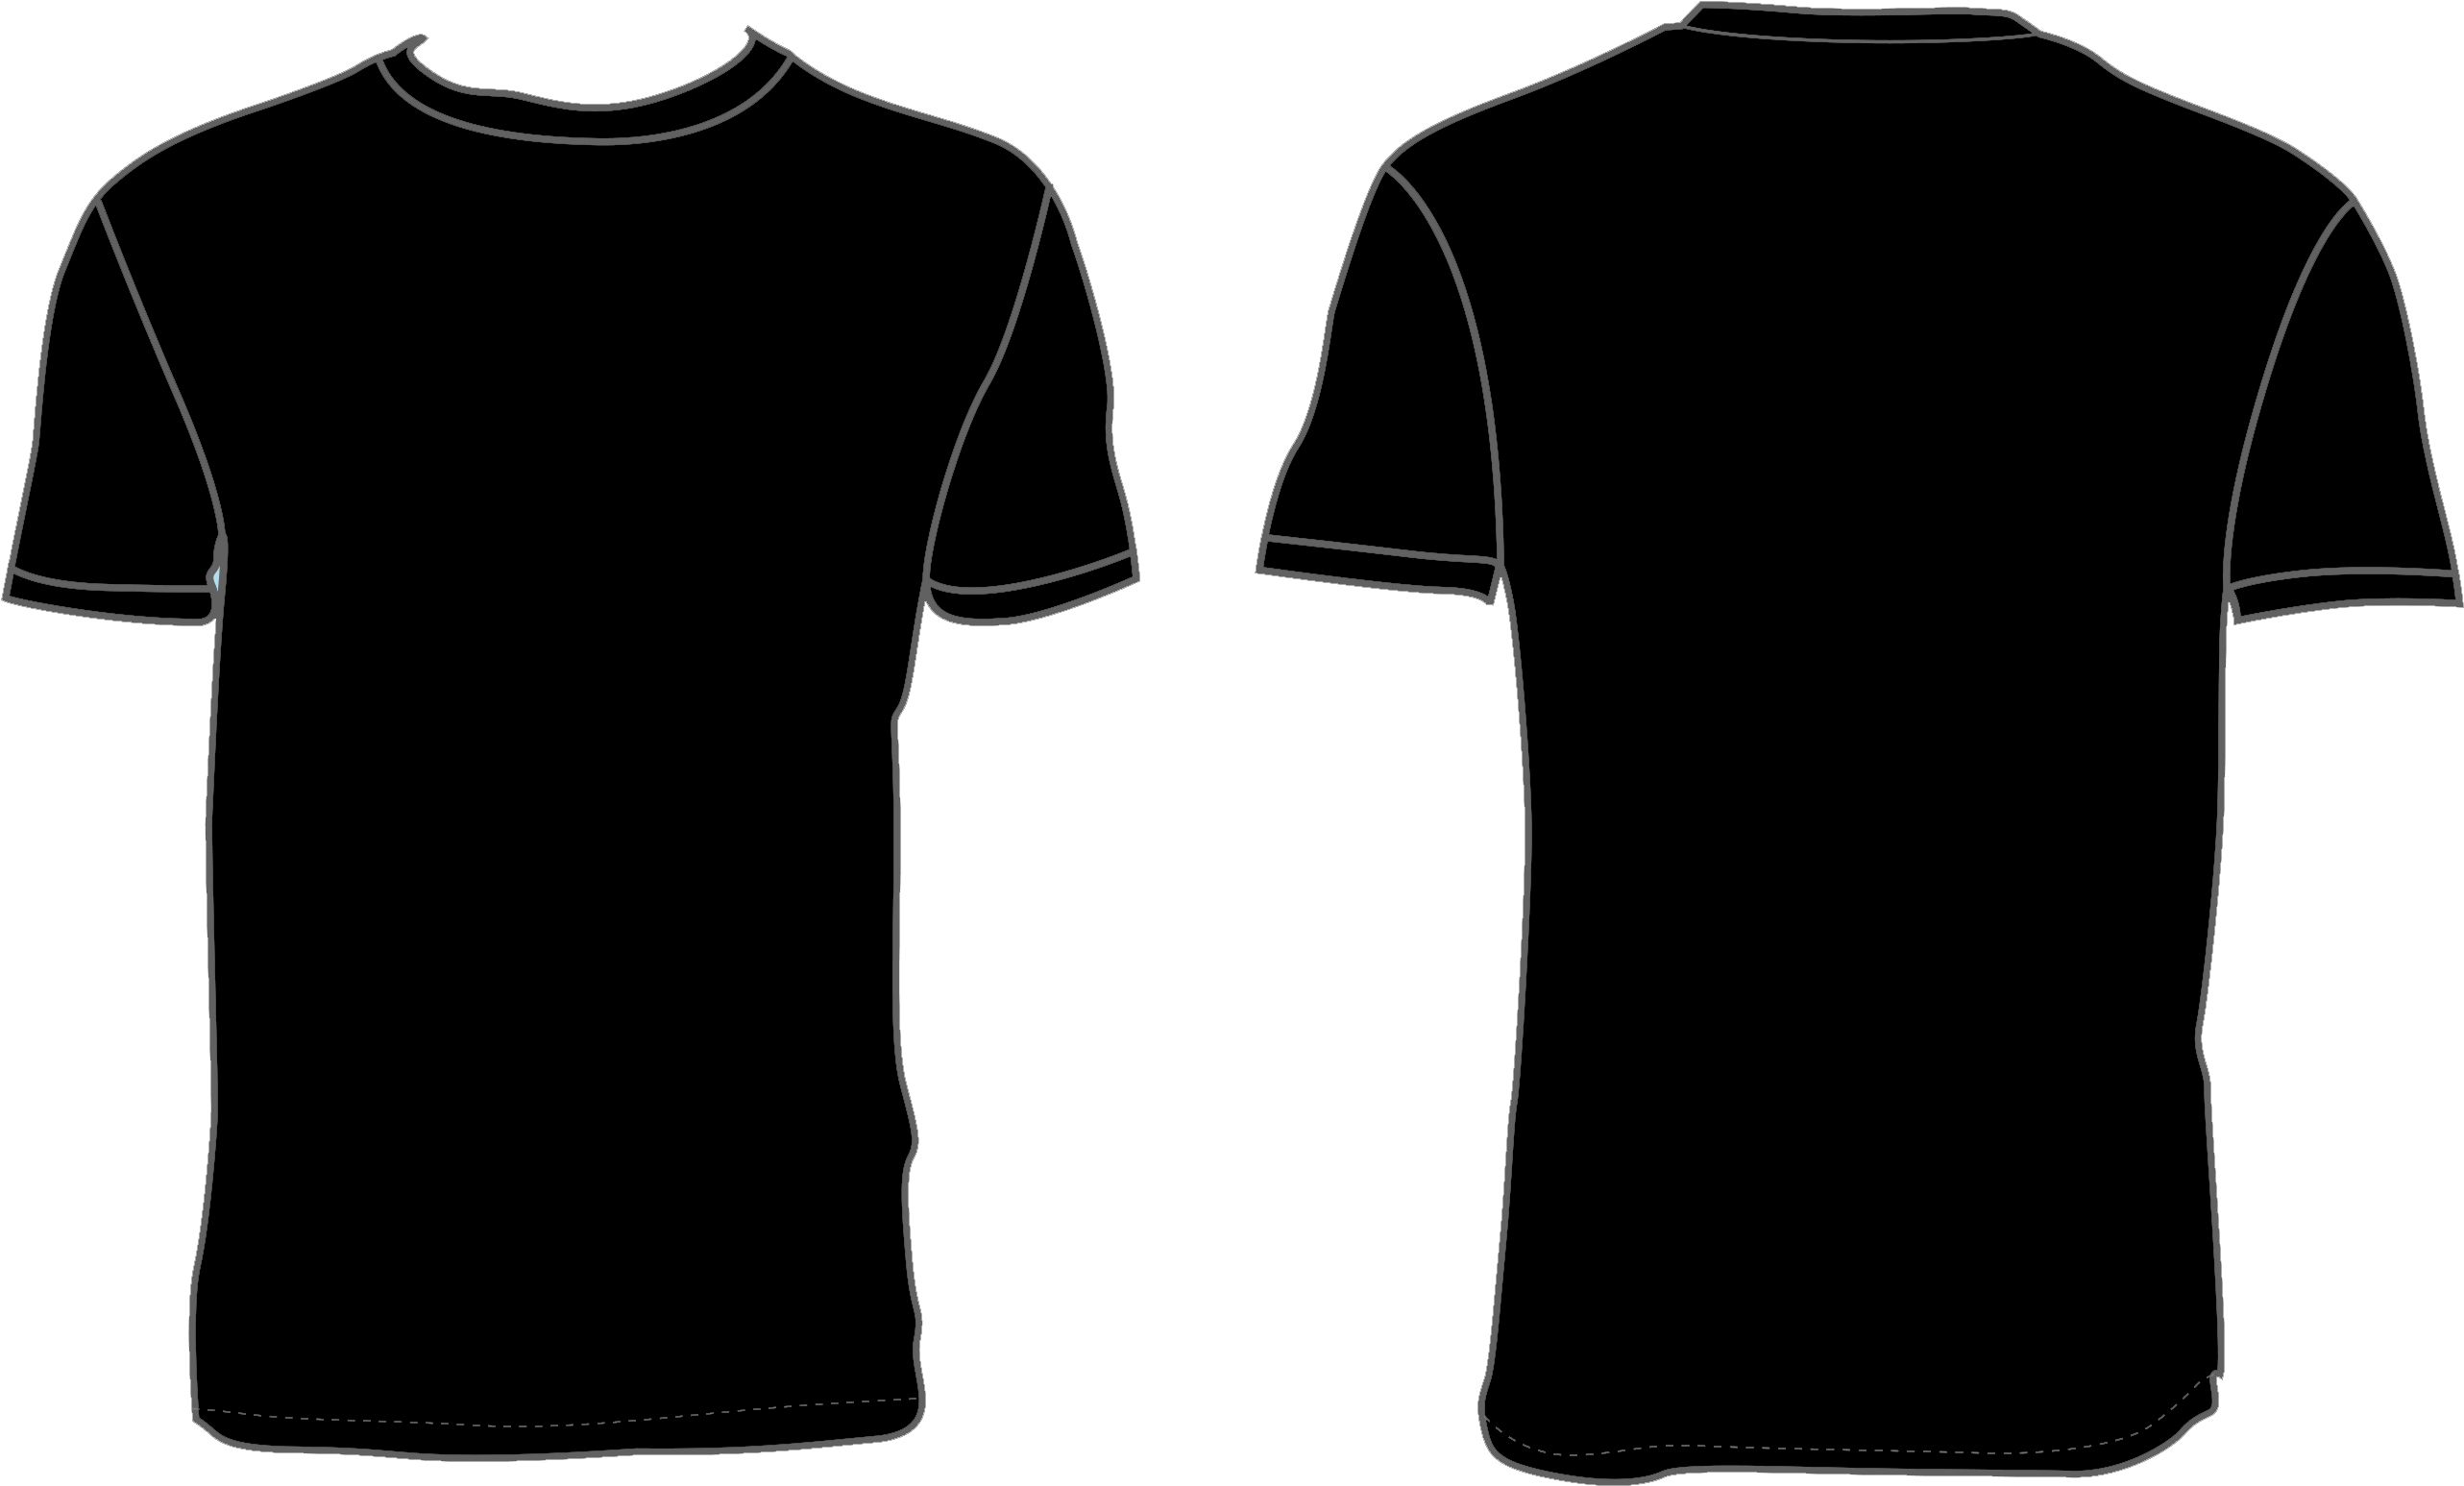 Black Shirt Template Png Clipart Full Size Clipart 4207455